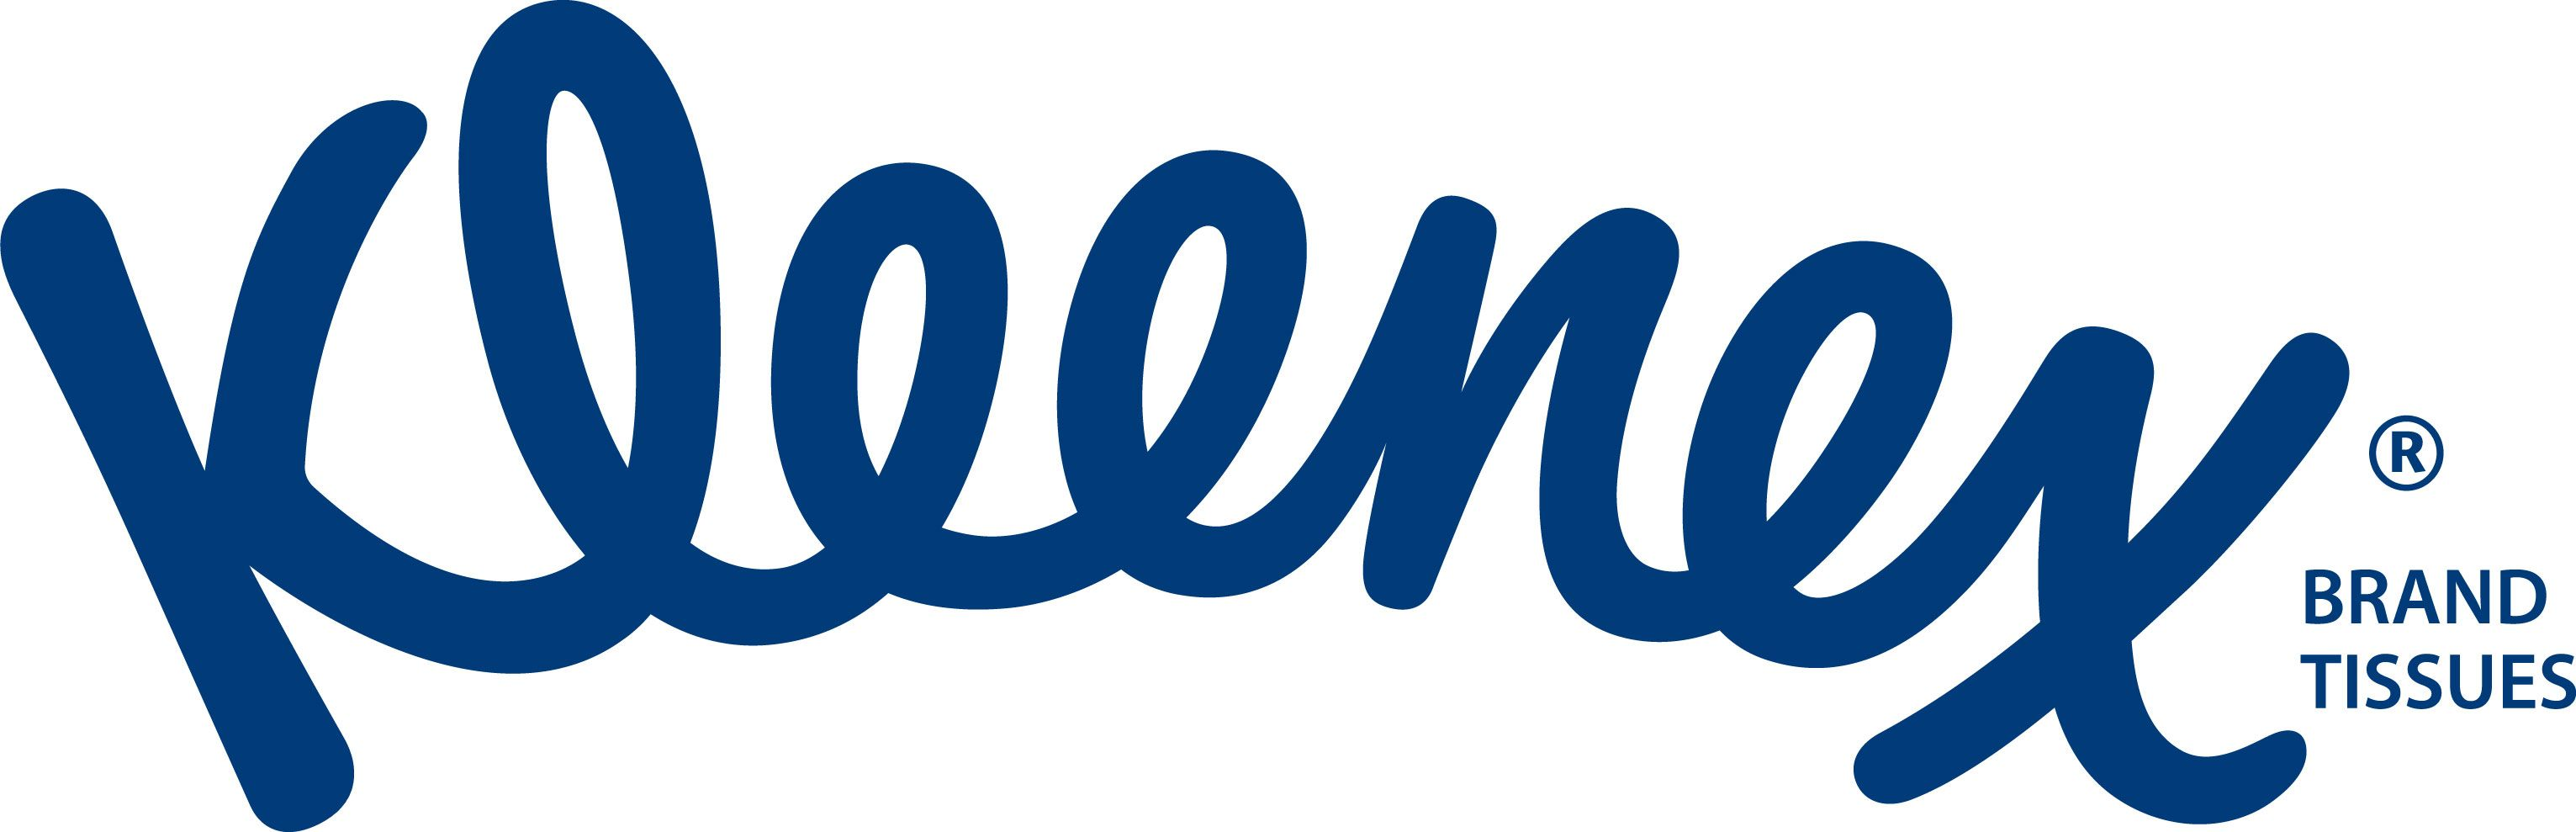 photo regarding Kleenex Printable Coupon called Kleenex Discount codes - The Krazy Coupon Female